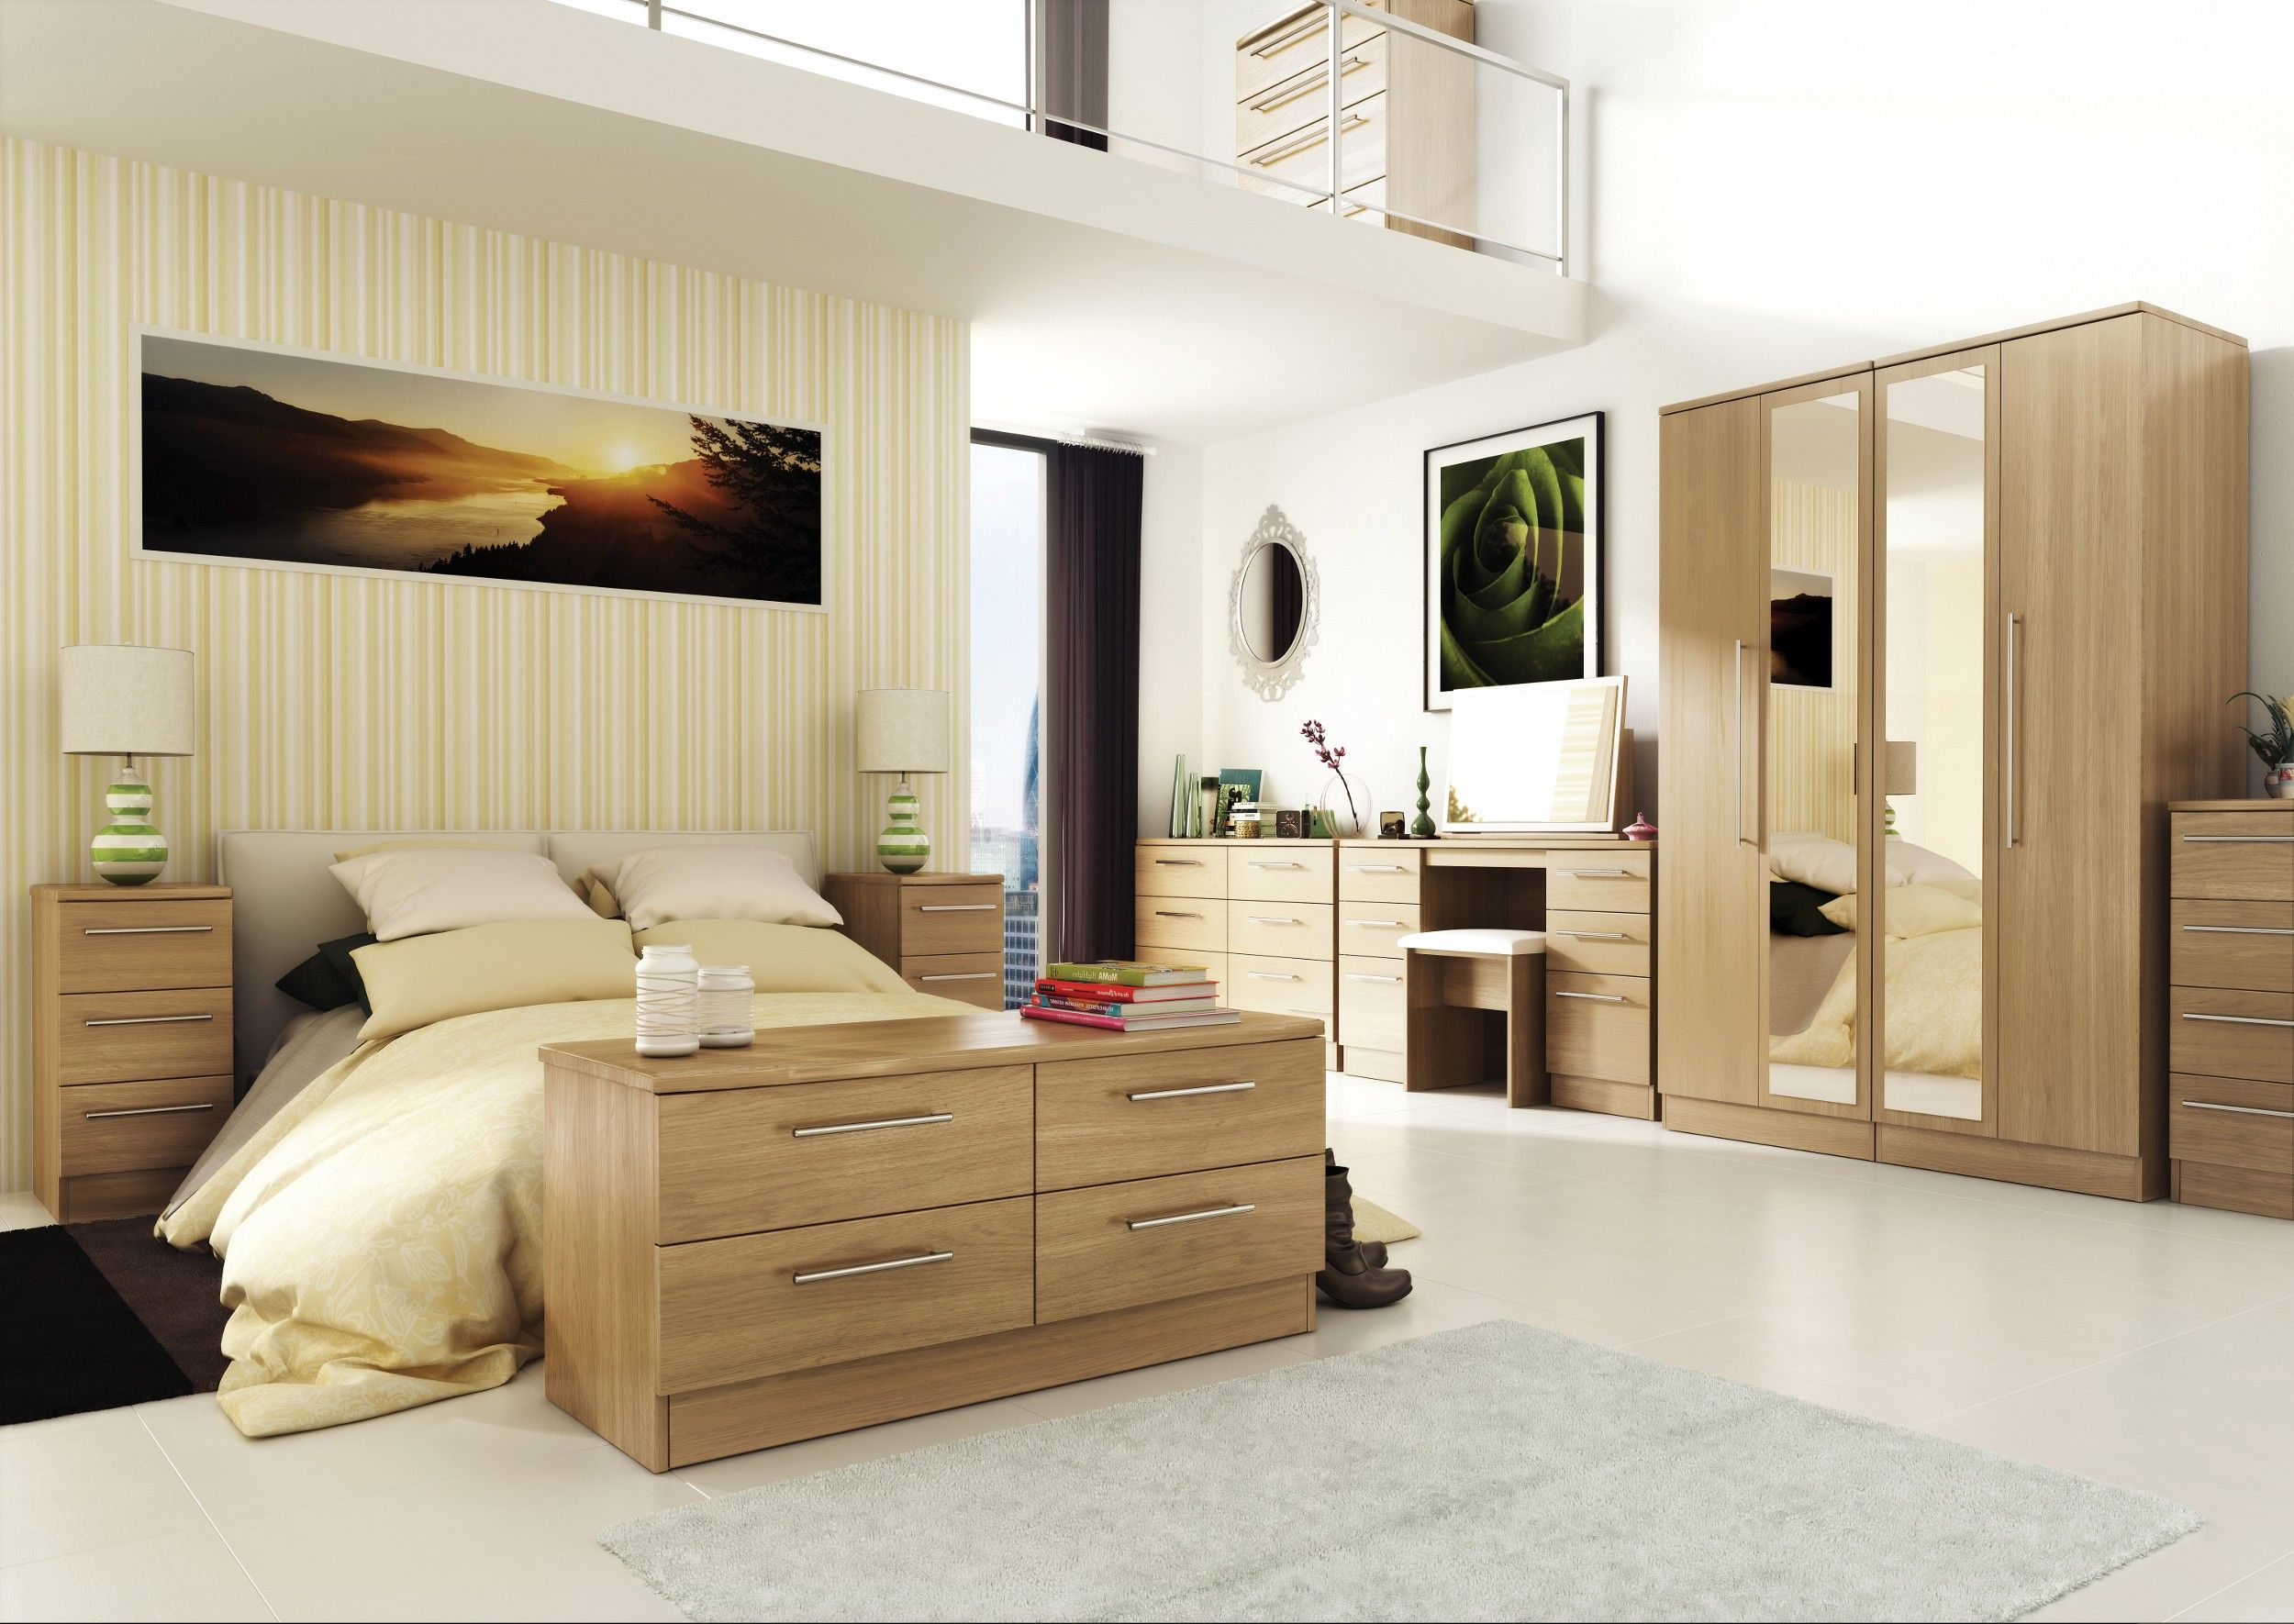 25 Cool Bedroom Furniture Uk For You Bedroom Furniture Can Be Available In Many D Modern Bedroom Furniture Sets Modern Bedroom Furniture Modern Bedroom Chairs